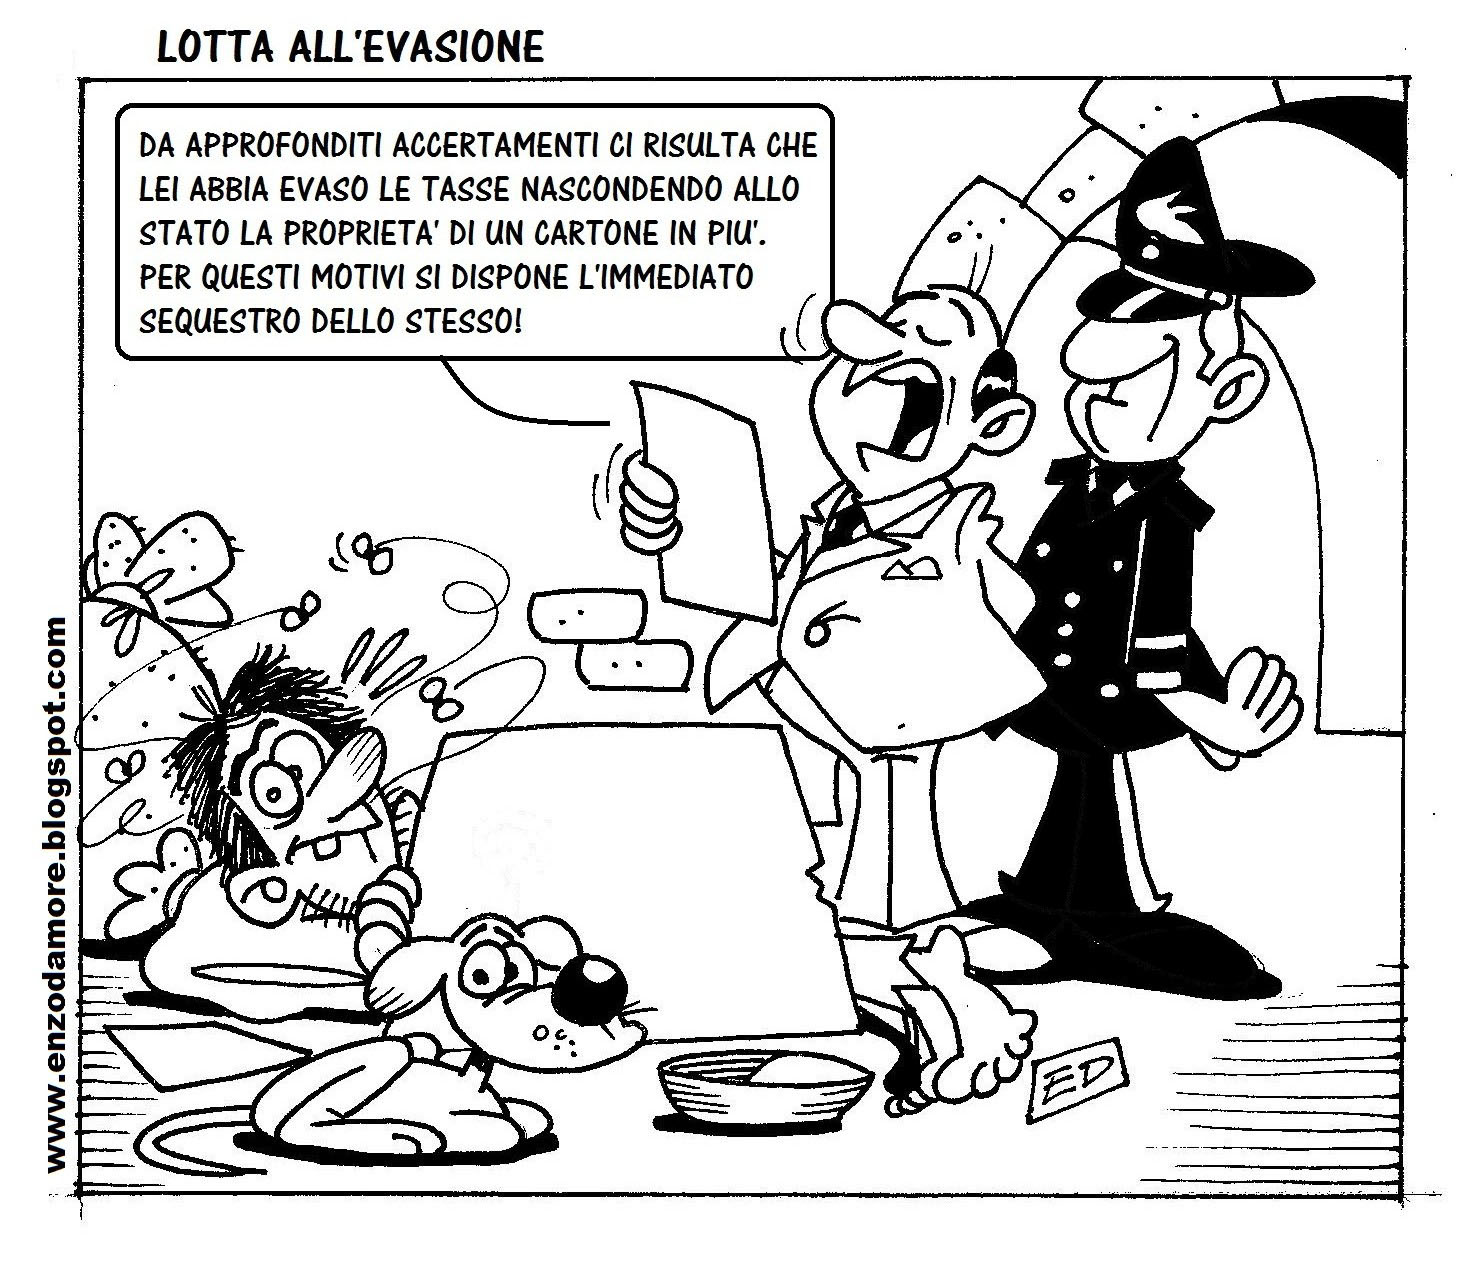 http://altocasertano.files.wordpress.com/2011/12/evasione-fiscale-001.jpg